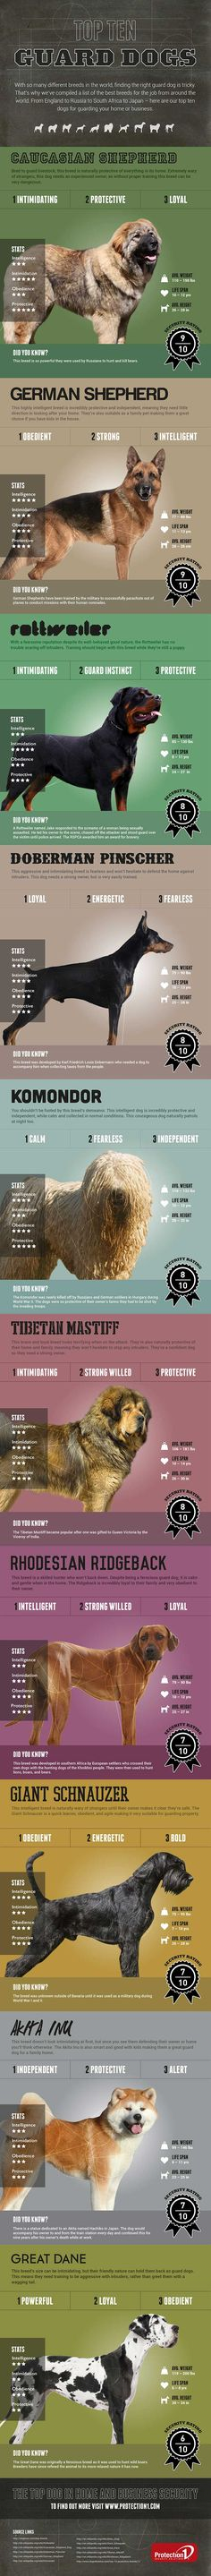 The World's Top Ten Guard - Do you fancy an infographic? There are a lot of them online, but if you want your own please visit www. Online girano molte infografiche, se ne vuoi realizzare una tutta tua visita www. Best Guard Dog Breeds, Best Guard Dogs, Pet Dogs, Dogs And Puppies, Mountain Dogs, Dog Care, Doge, Dog Friends, I Love Dogs